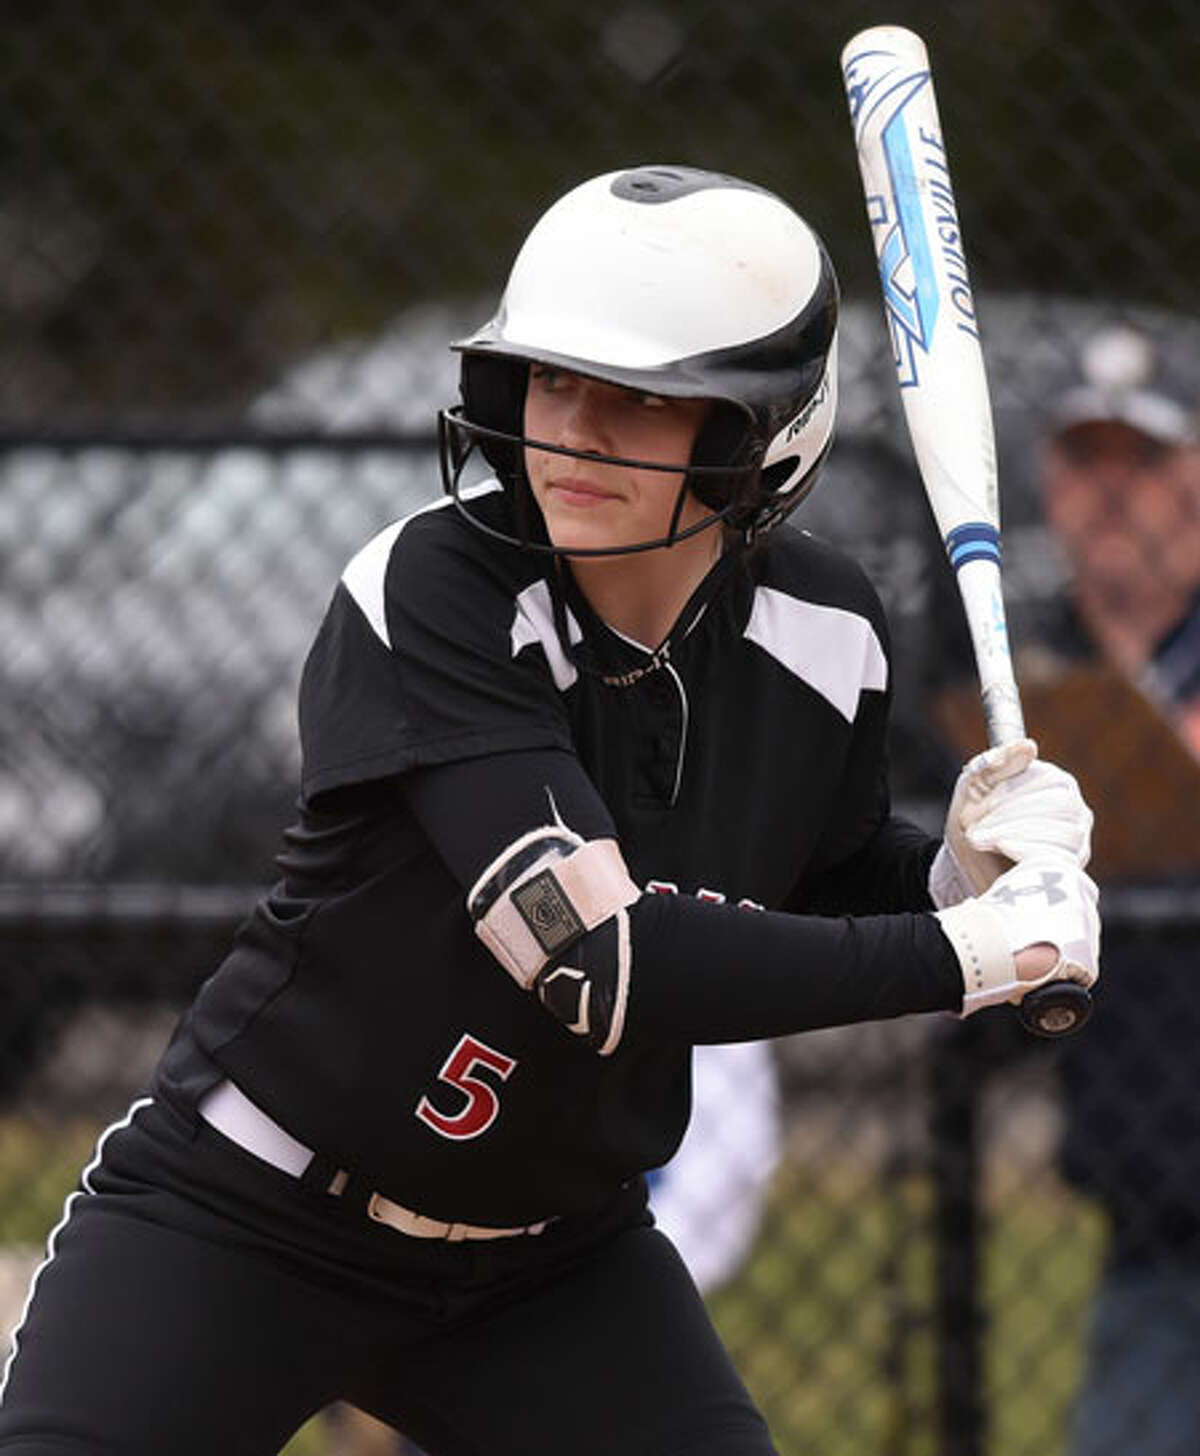 Gillian Kane awaits a pitch during a softball game in Waveny Park in the spring. - Dave Stewart photo